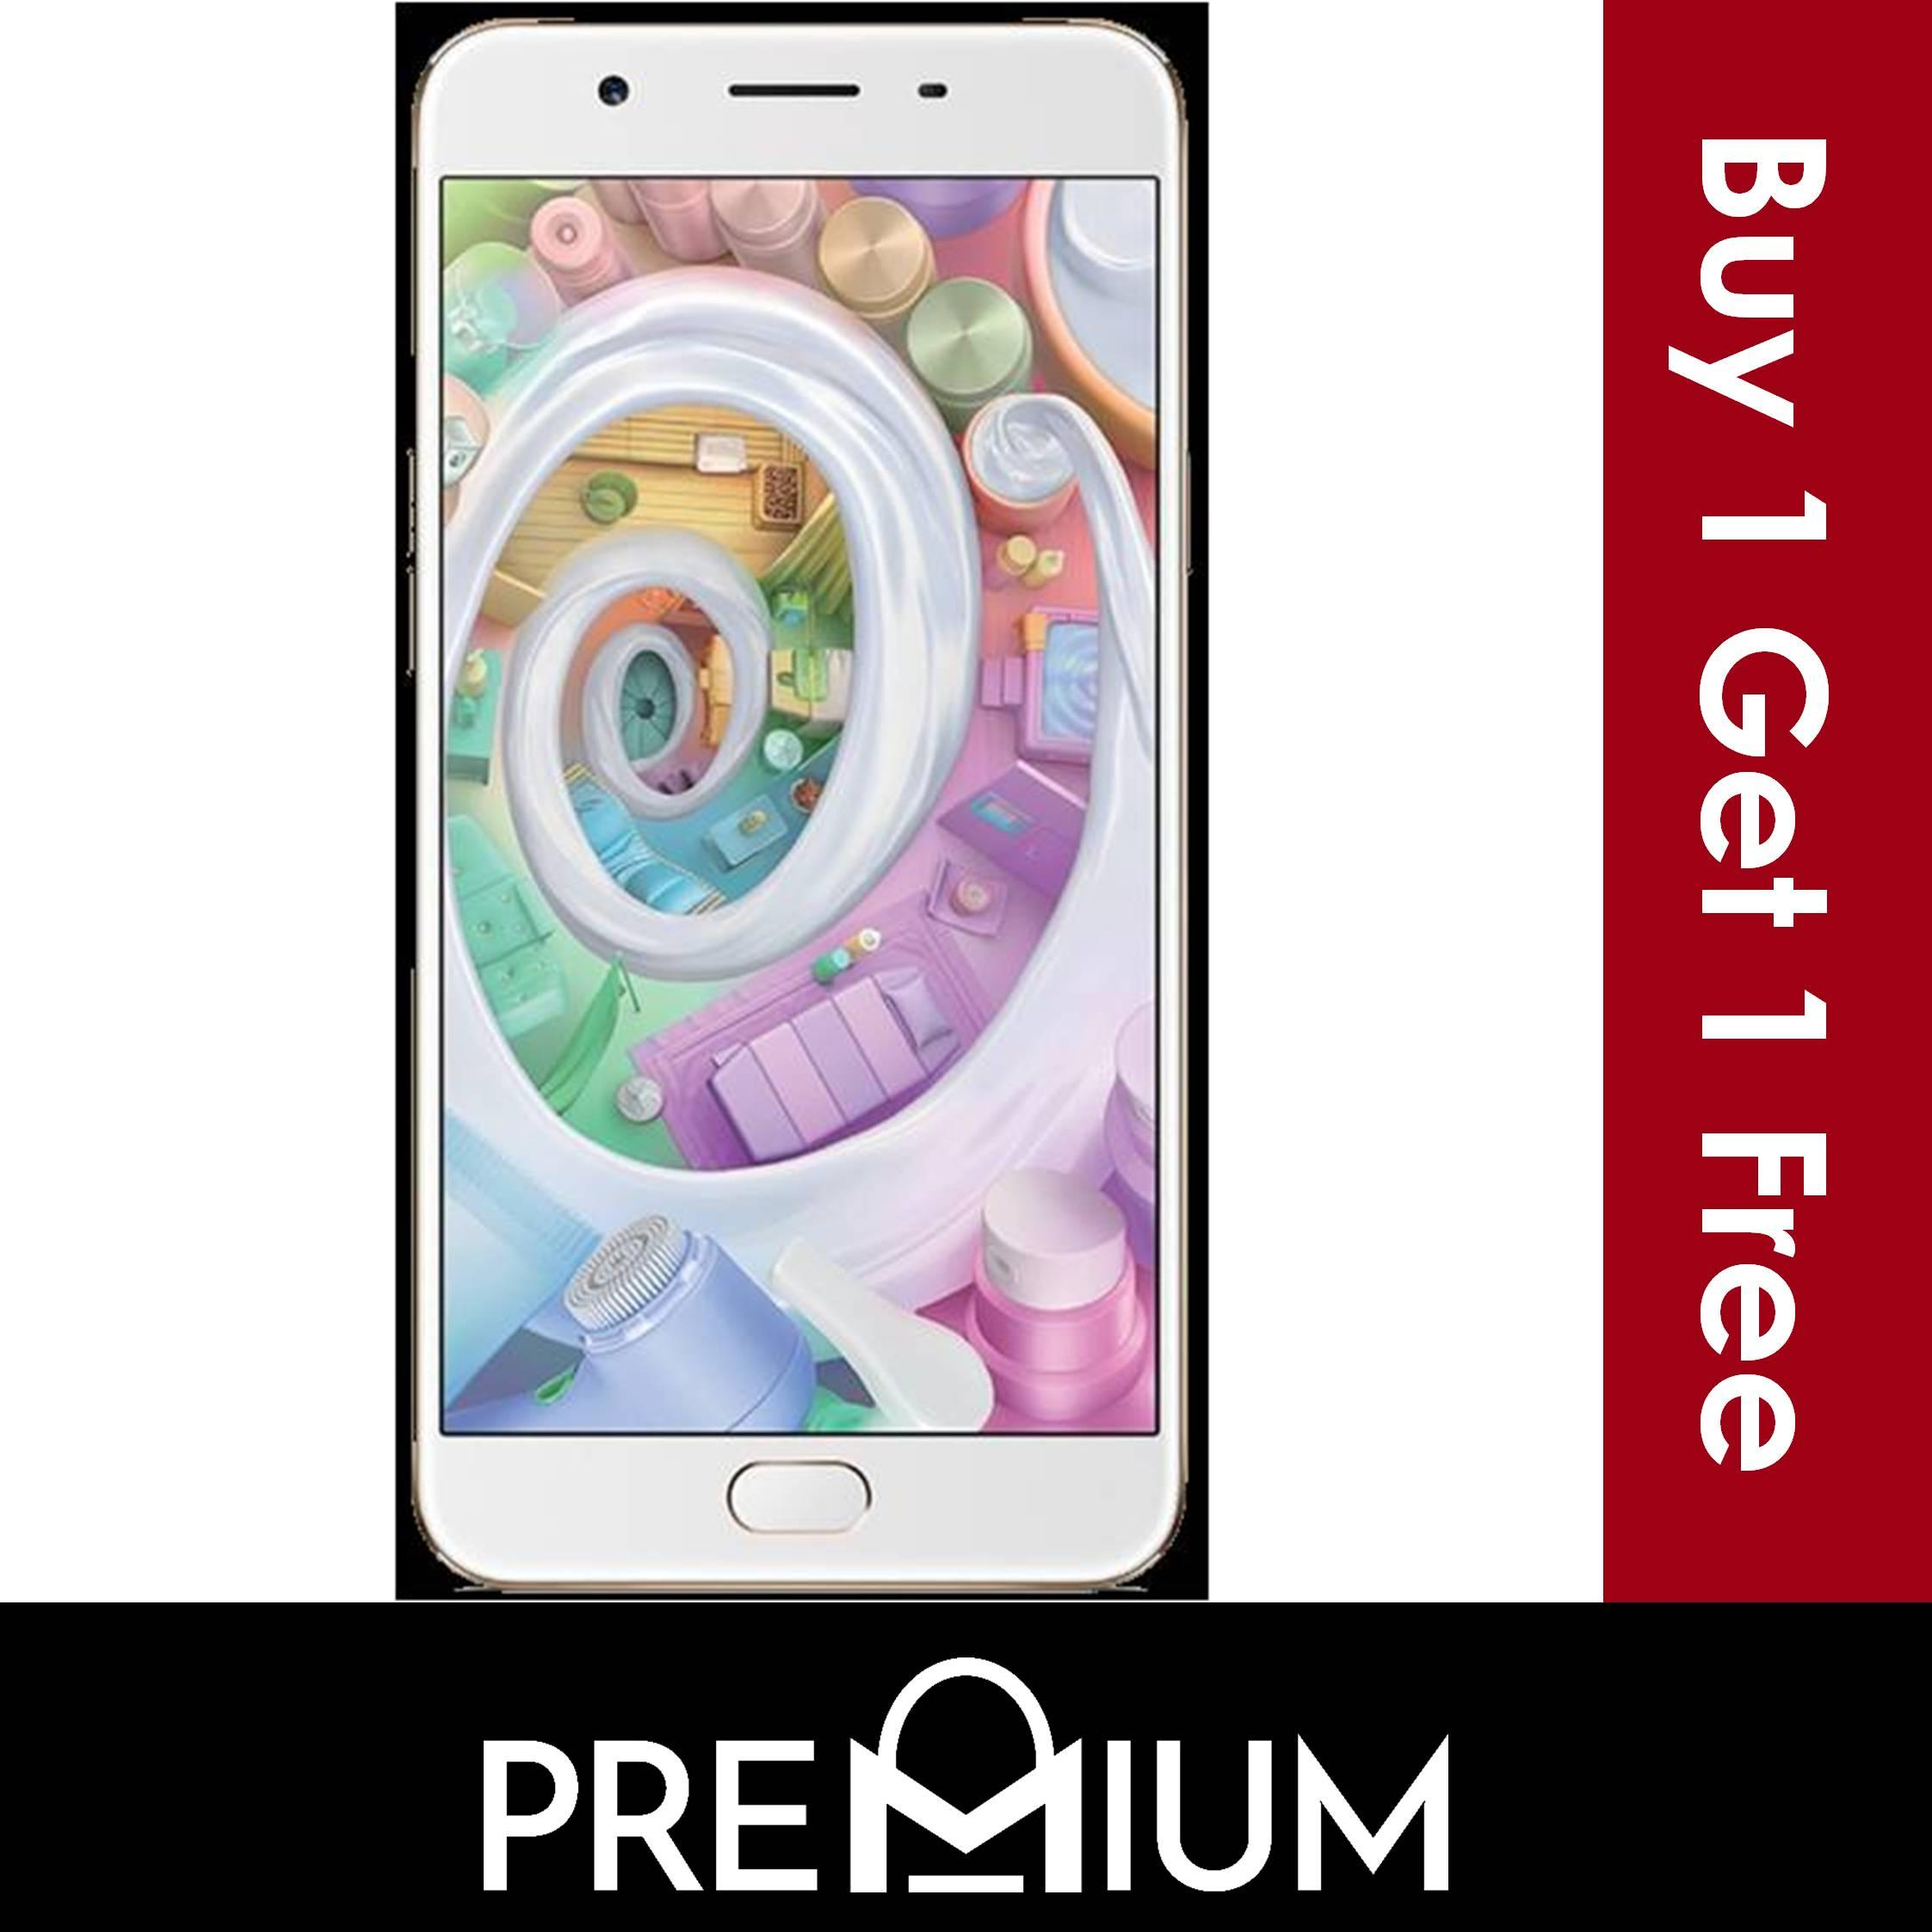 Buy Sell Cheapest Oppo A57 Stylish Best Quality Product Deals Tempered Glass F3 3d Full Cover White Premium Pro 1 Free Screen Protector For R7s A37 A33 F1s